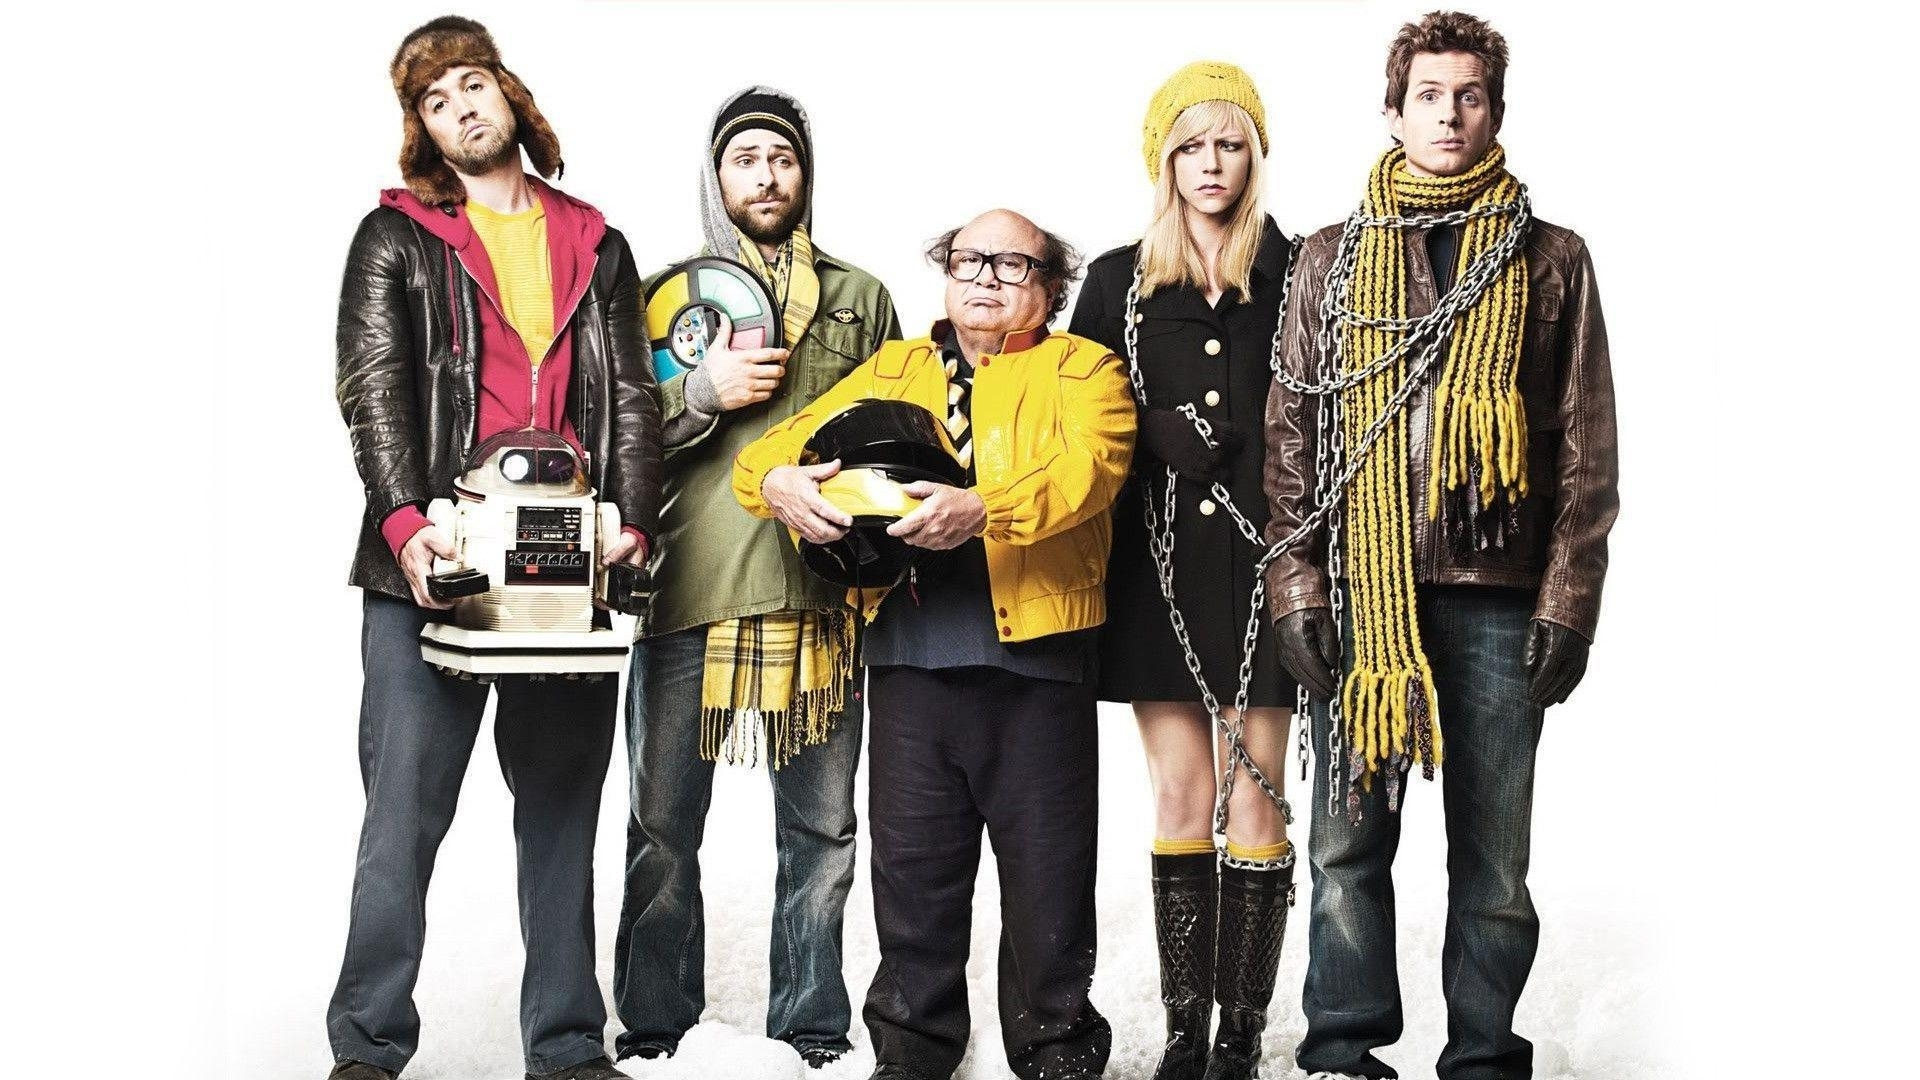 always sunny in philadelphia wallpapers - wallpaper cave